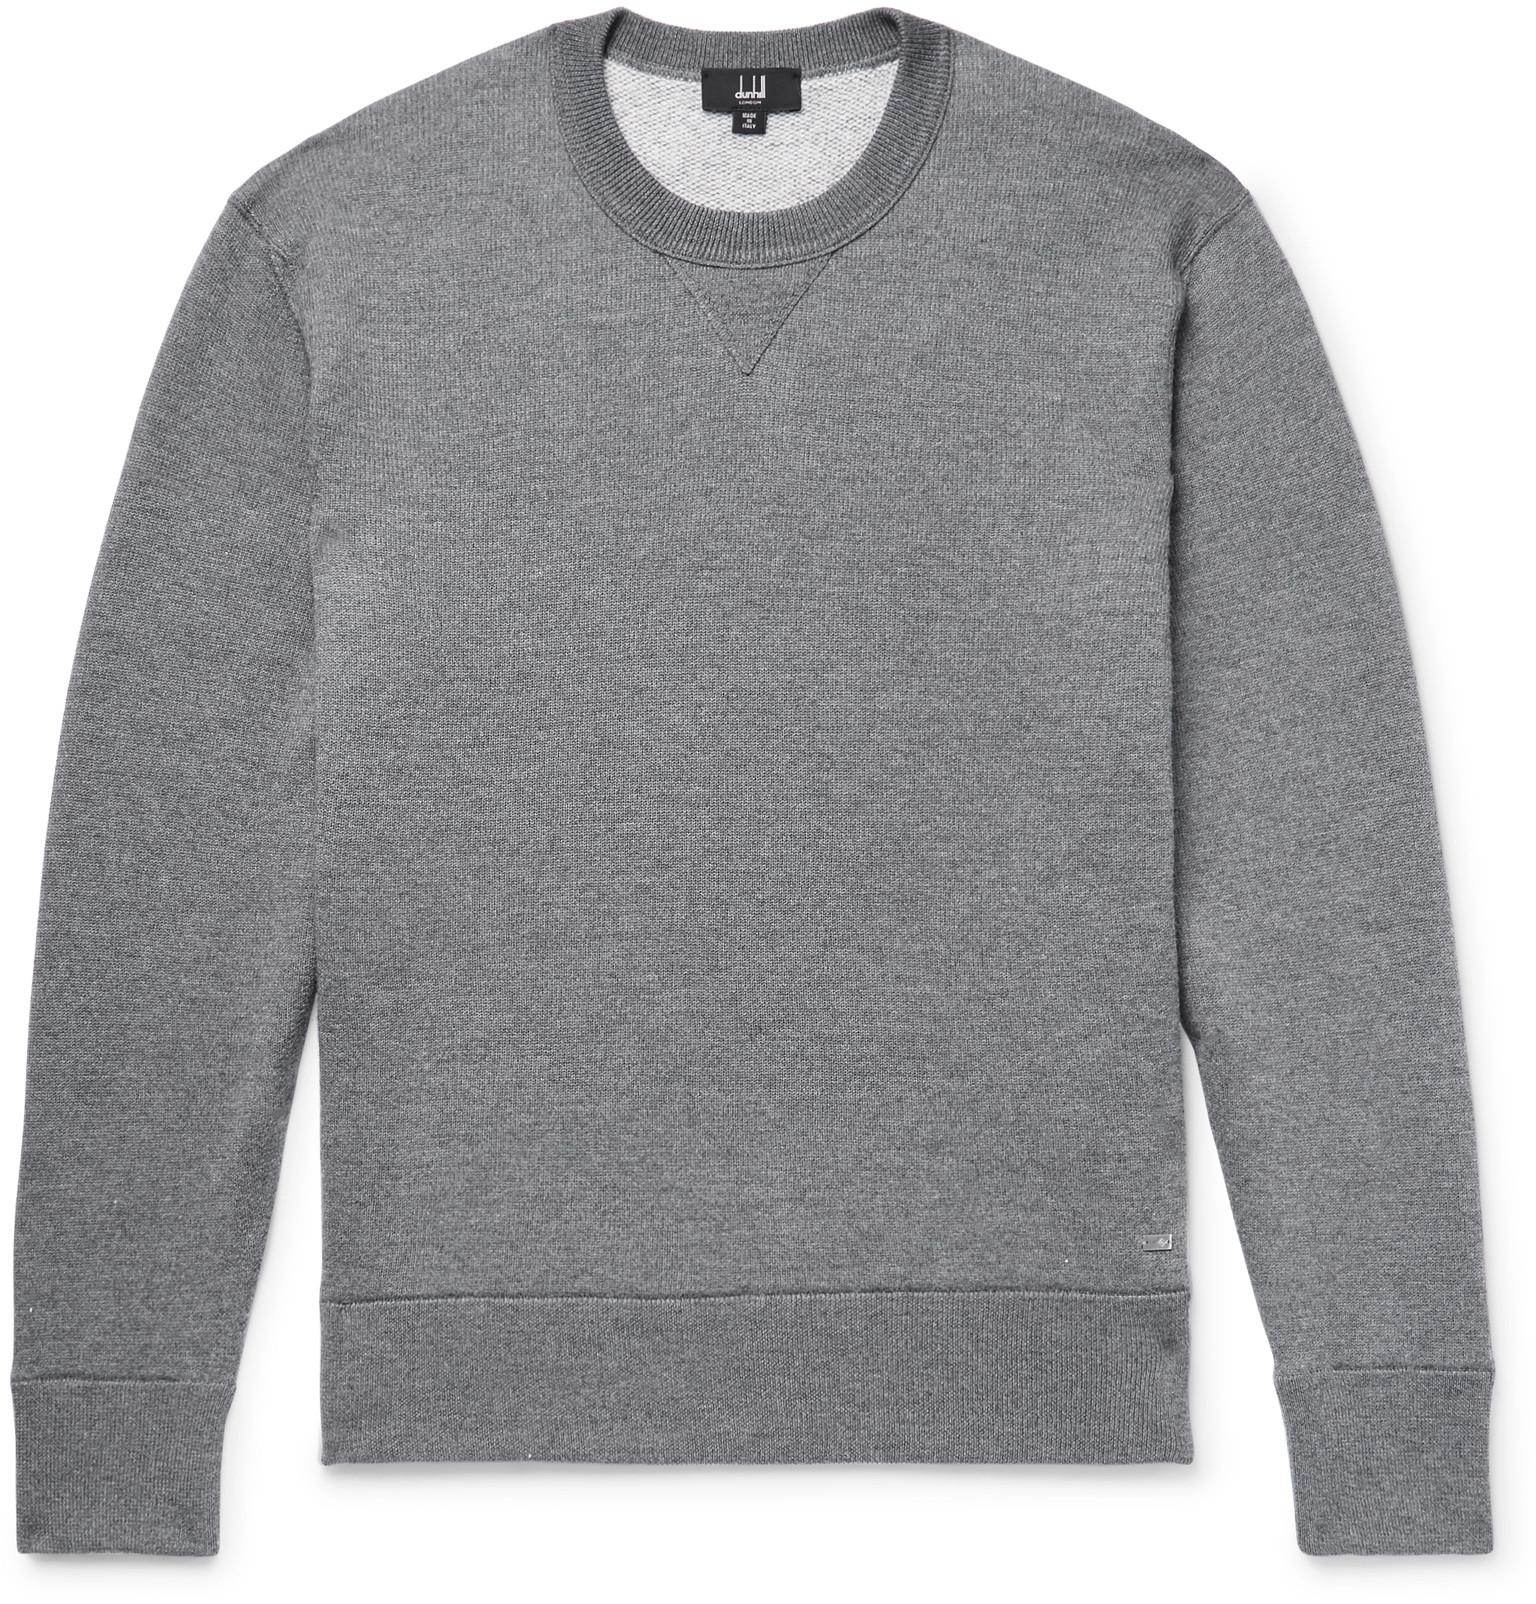 And Wool Men's Blend Cashmere Gray Loopback Dunhill Sweatshirt Uw7vOq